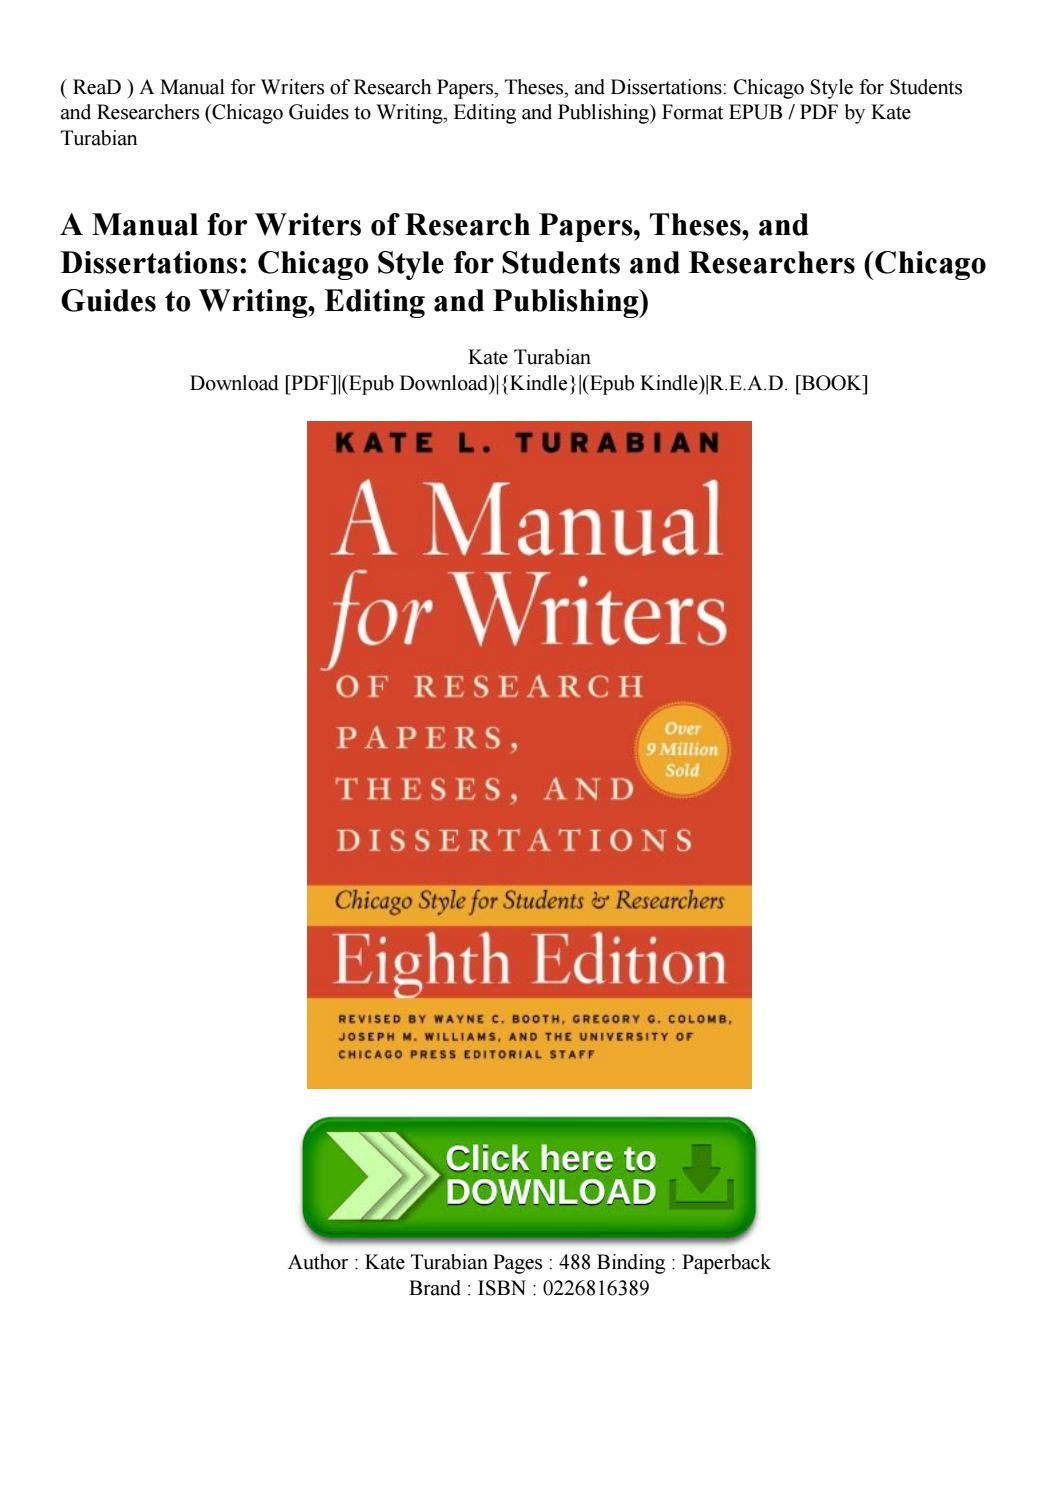 010 Research Paper Manual For Writers Of Papers Theses And Dissertations Page 1 Sensational A Ed. 8 8th Edition Ninth Pdf Full